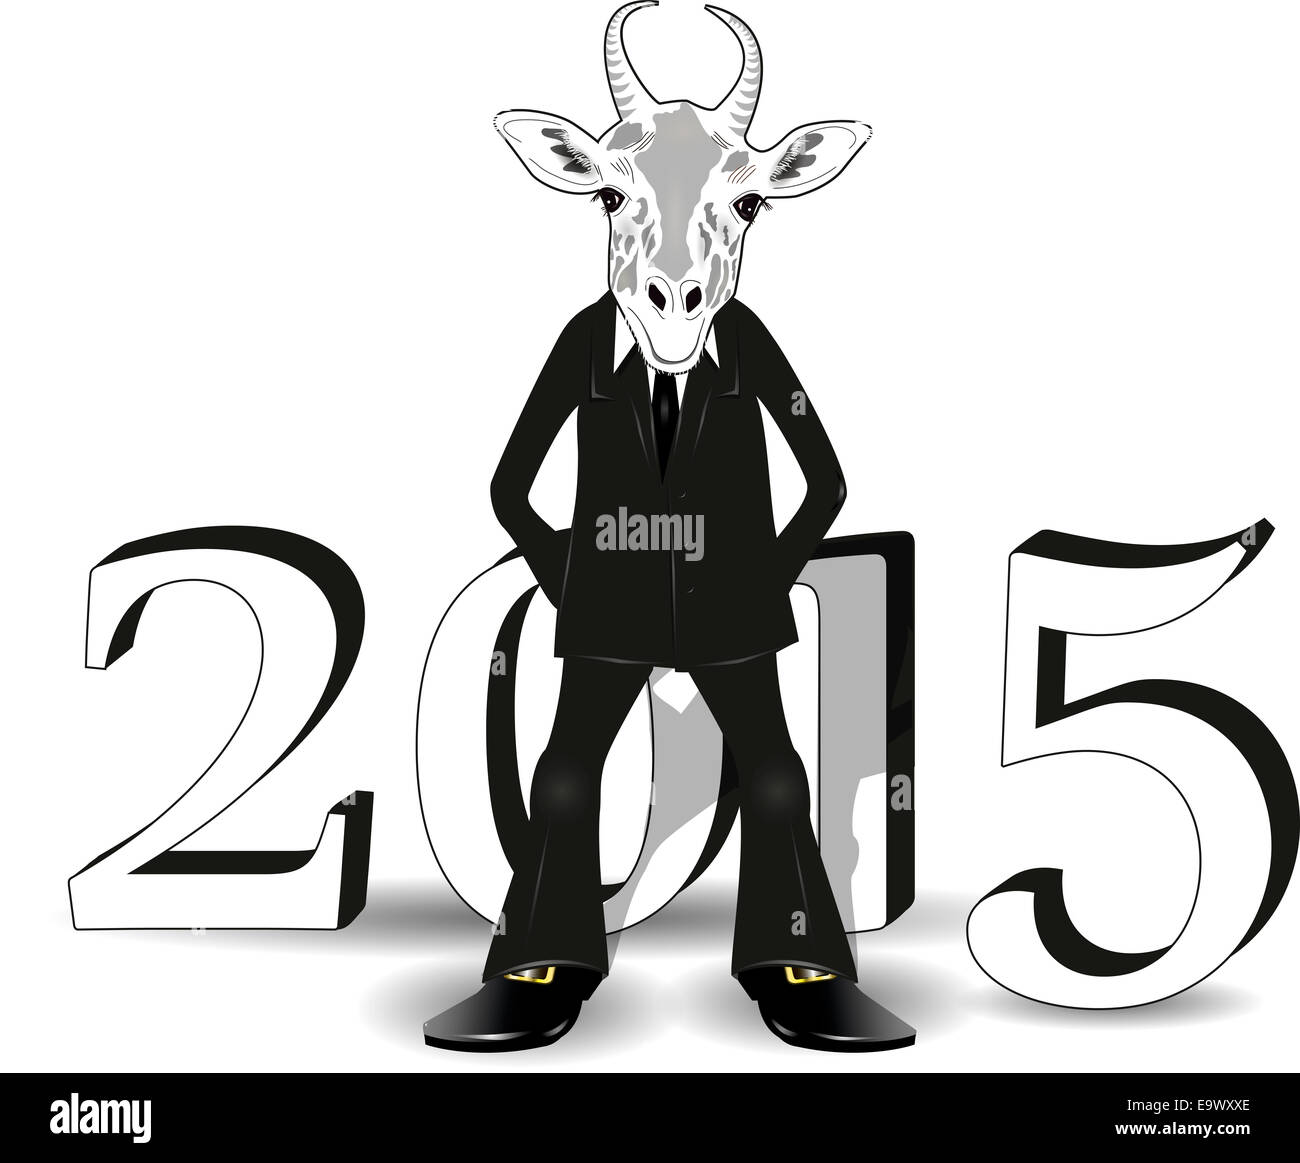 abstract illustration of a goat symbol of the new year - Stock Image